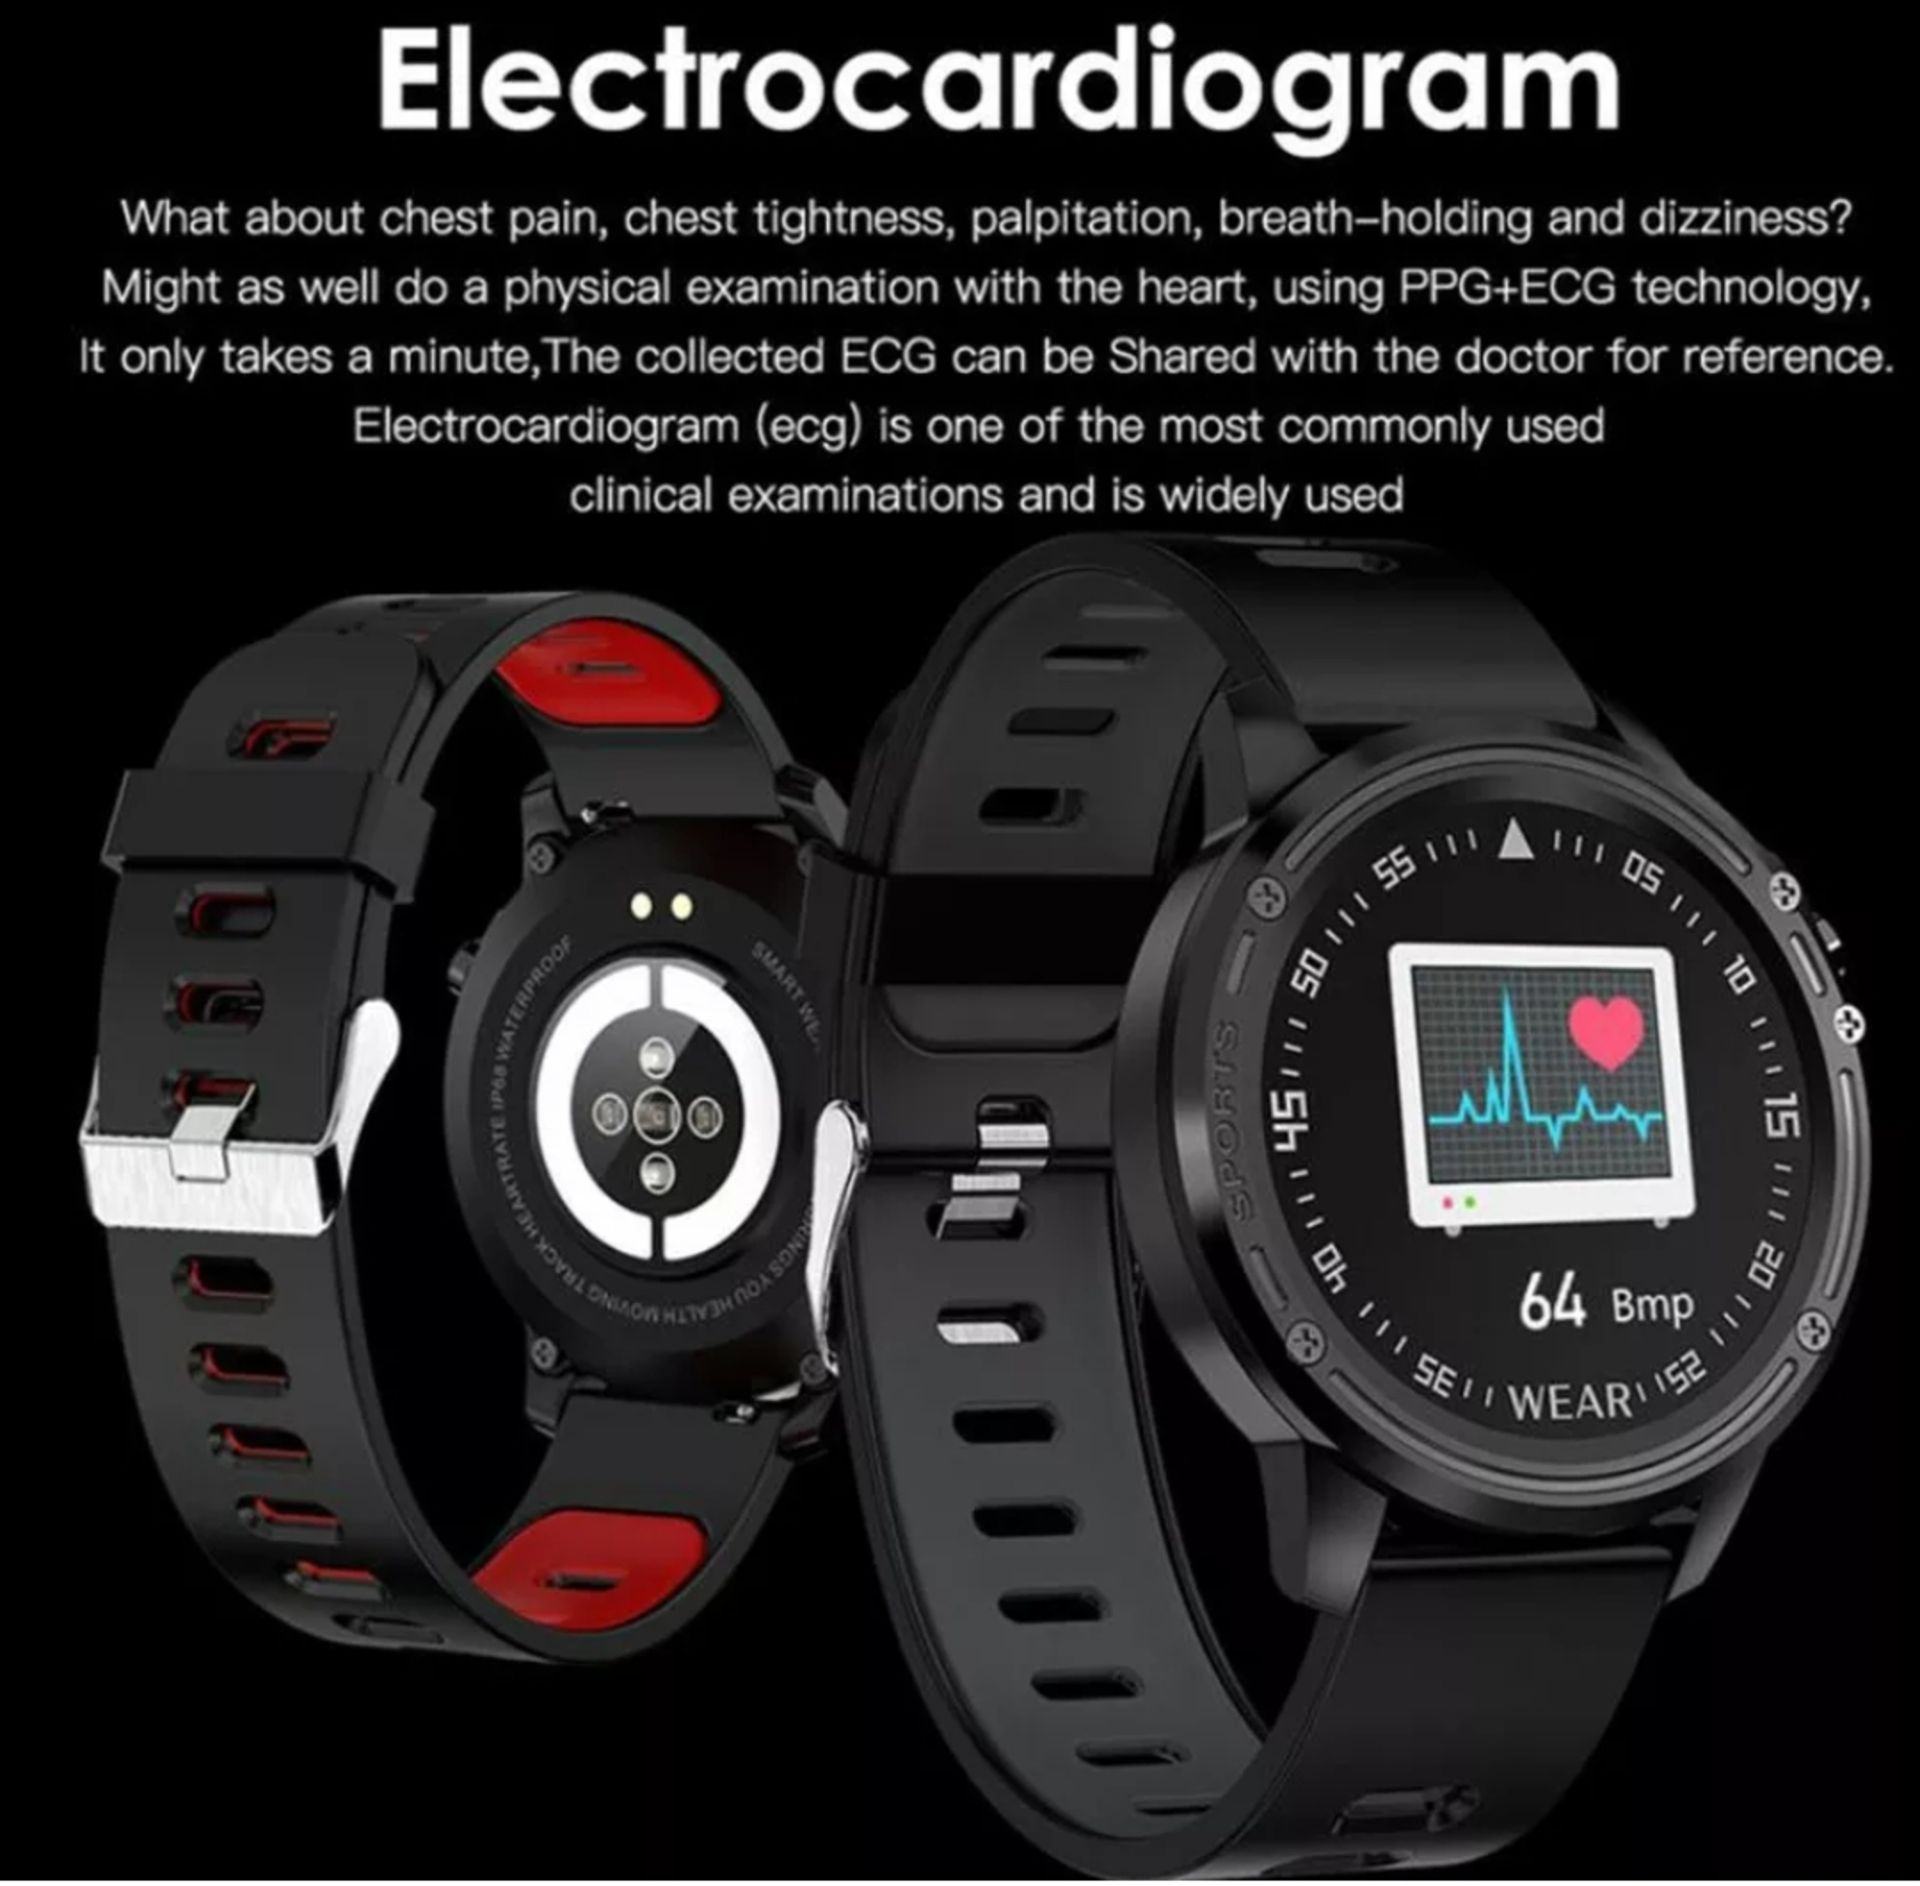 Lot 156 - L8 Blood Pressure, Oxygen, Heart Rate Monitor, Bt4.0 Ip68 Smart Watch - Grey/Black Strap